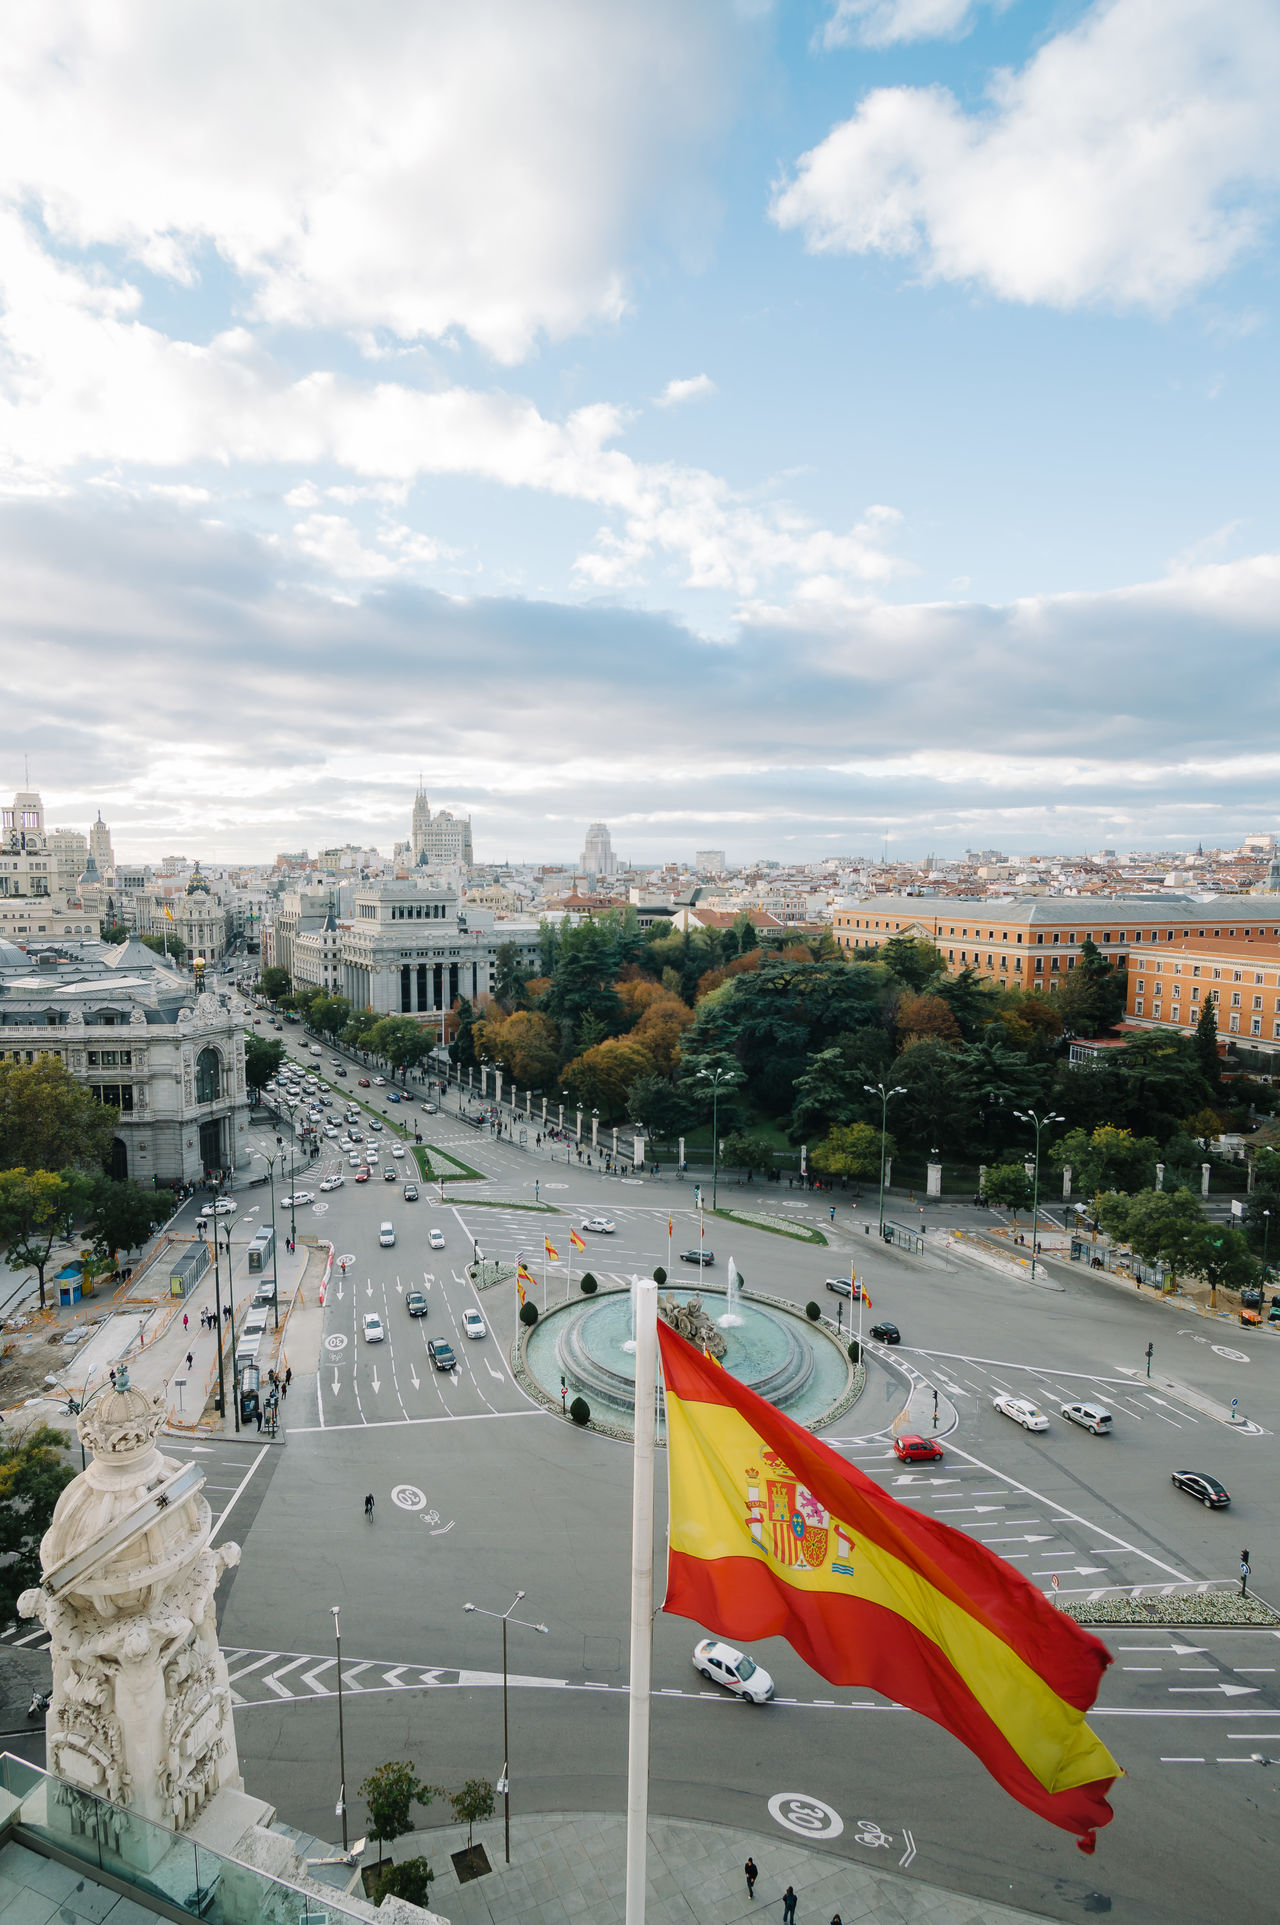 Madrid skyline from town hall at sunset Architecture Cibeles City City City Hall City Life City Street Cityscape Cloud - Sky Day Flag High Angle View Modern No People Outdoors Road Sky Skyline Skyscraper SPAIN Spanish Town Hall Travel Destinations Urban Skyline